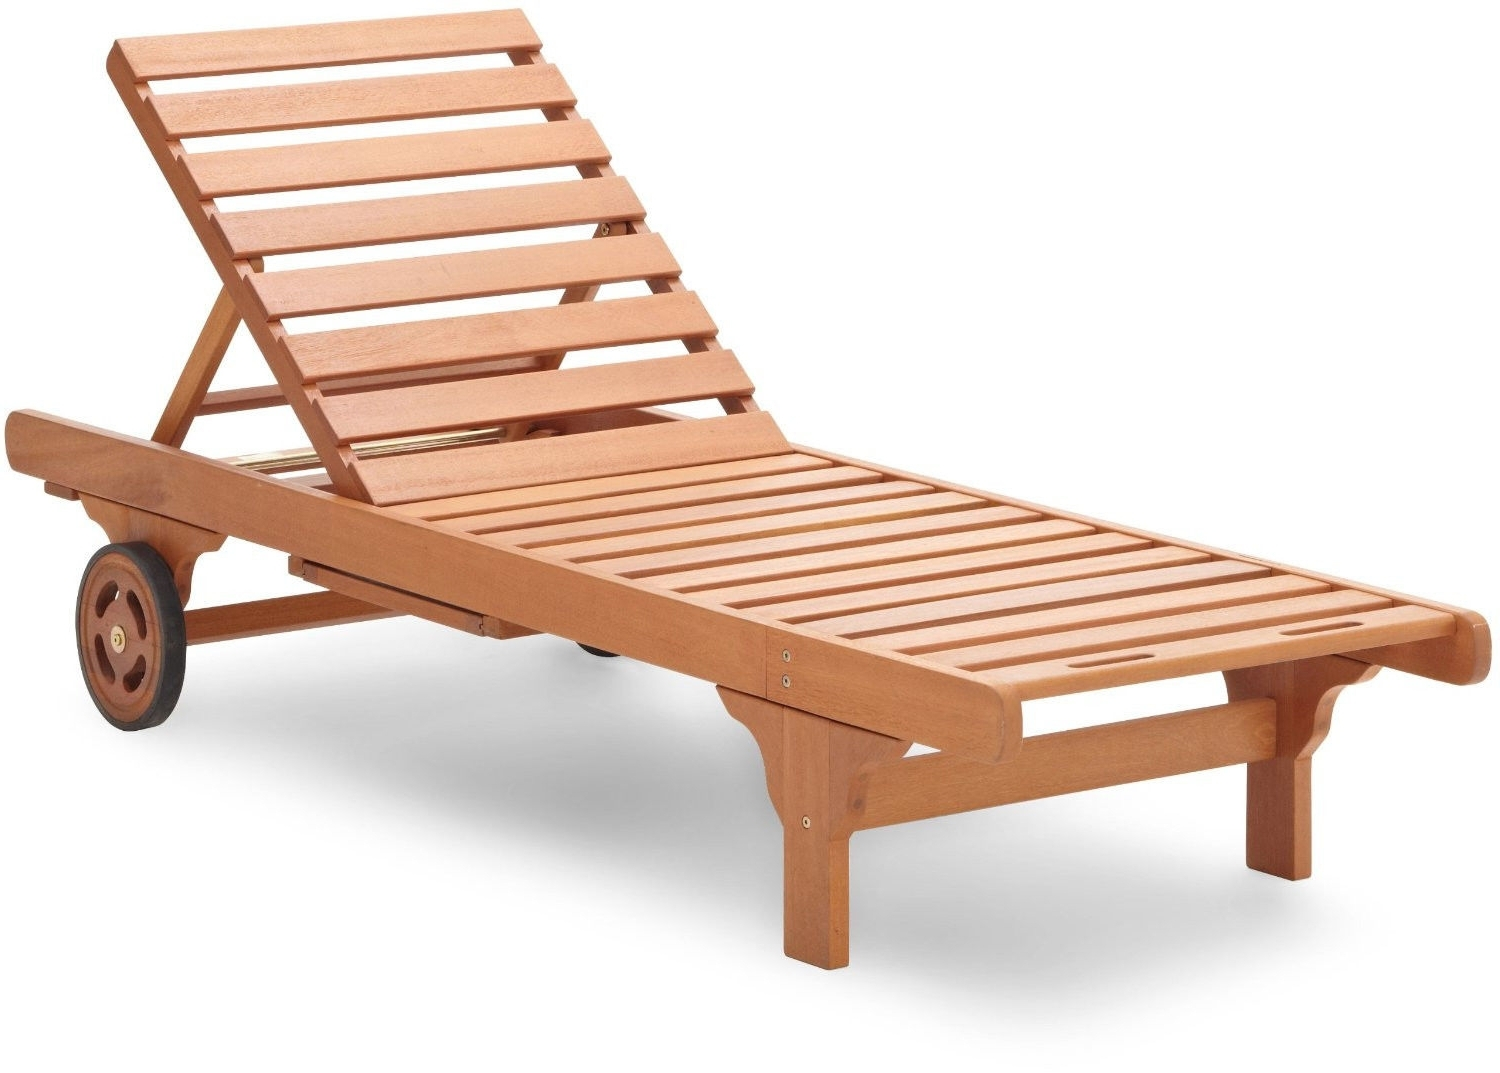 Most Recent Wood Chaise Lounges Throughout Wood Chaise Lounge Chairs • Lounge Chairs Ideas (View 9 of 15)